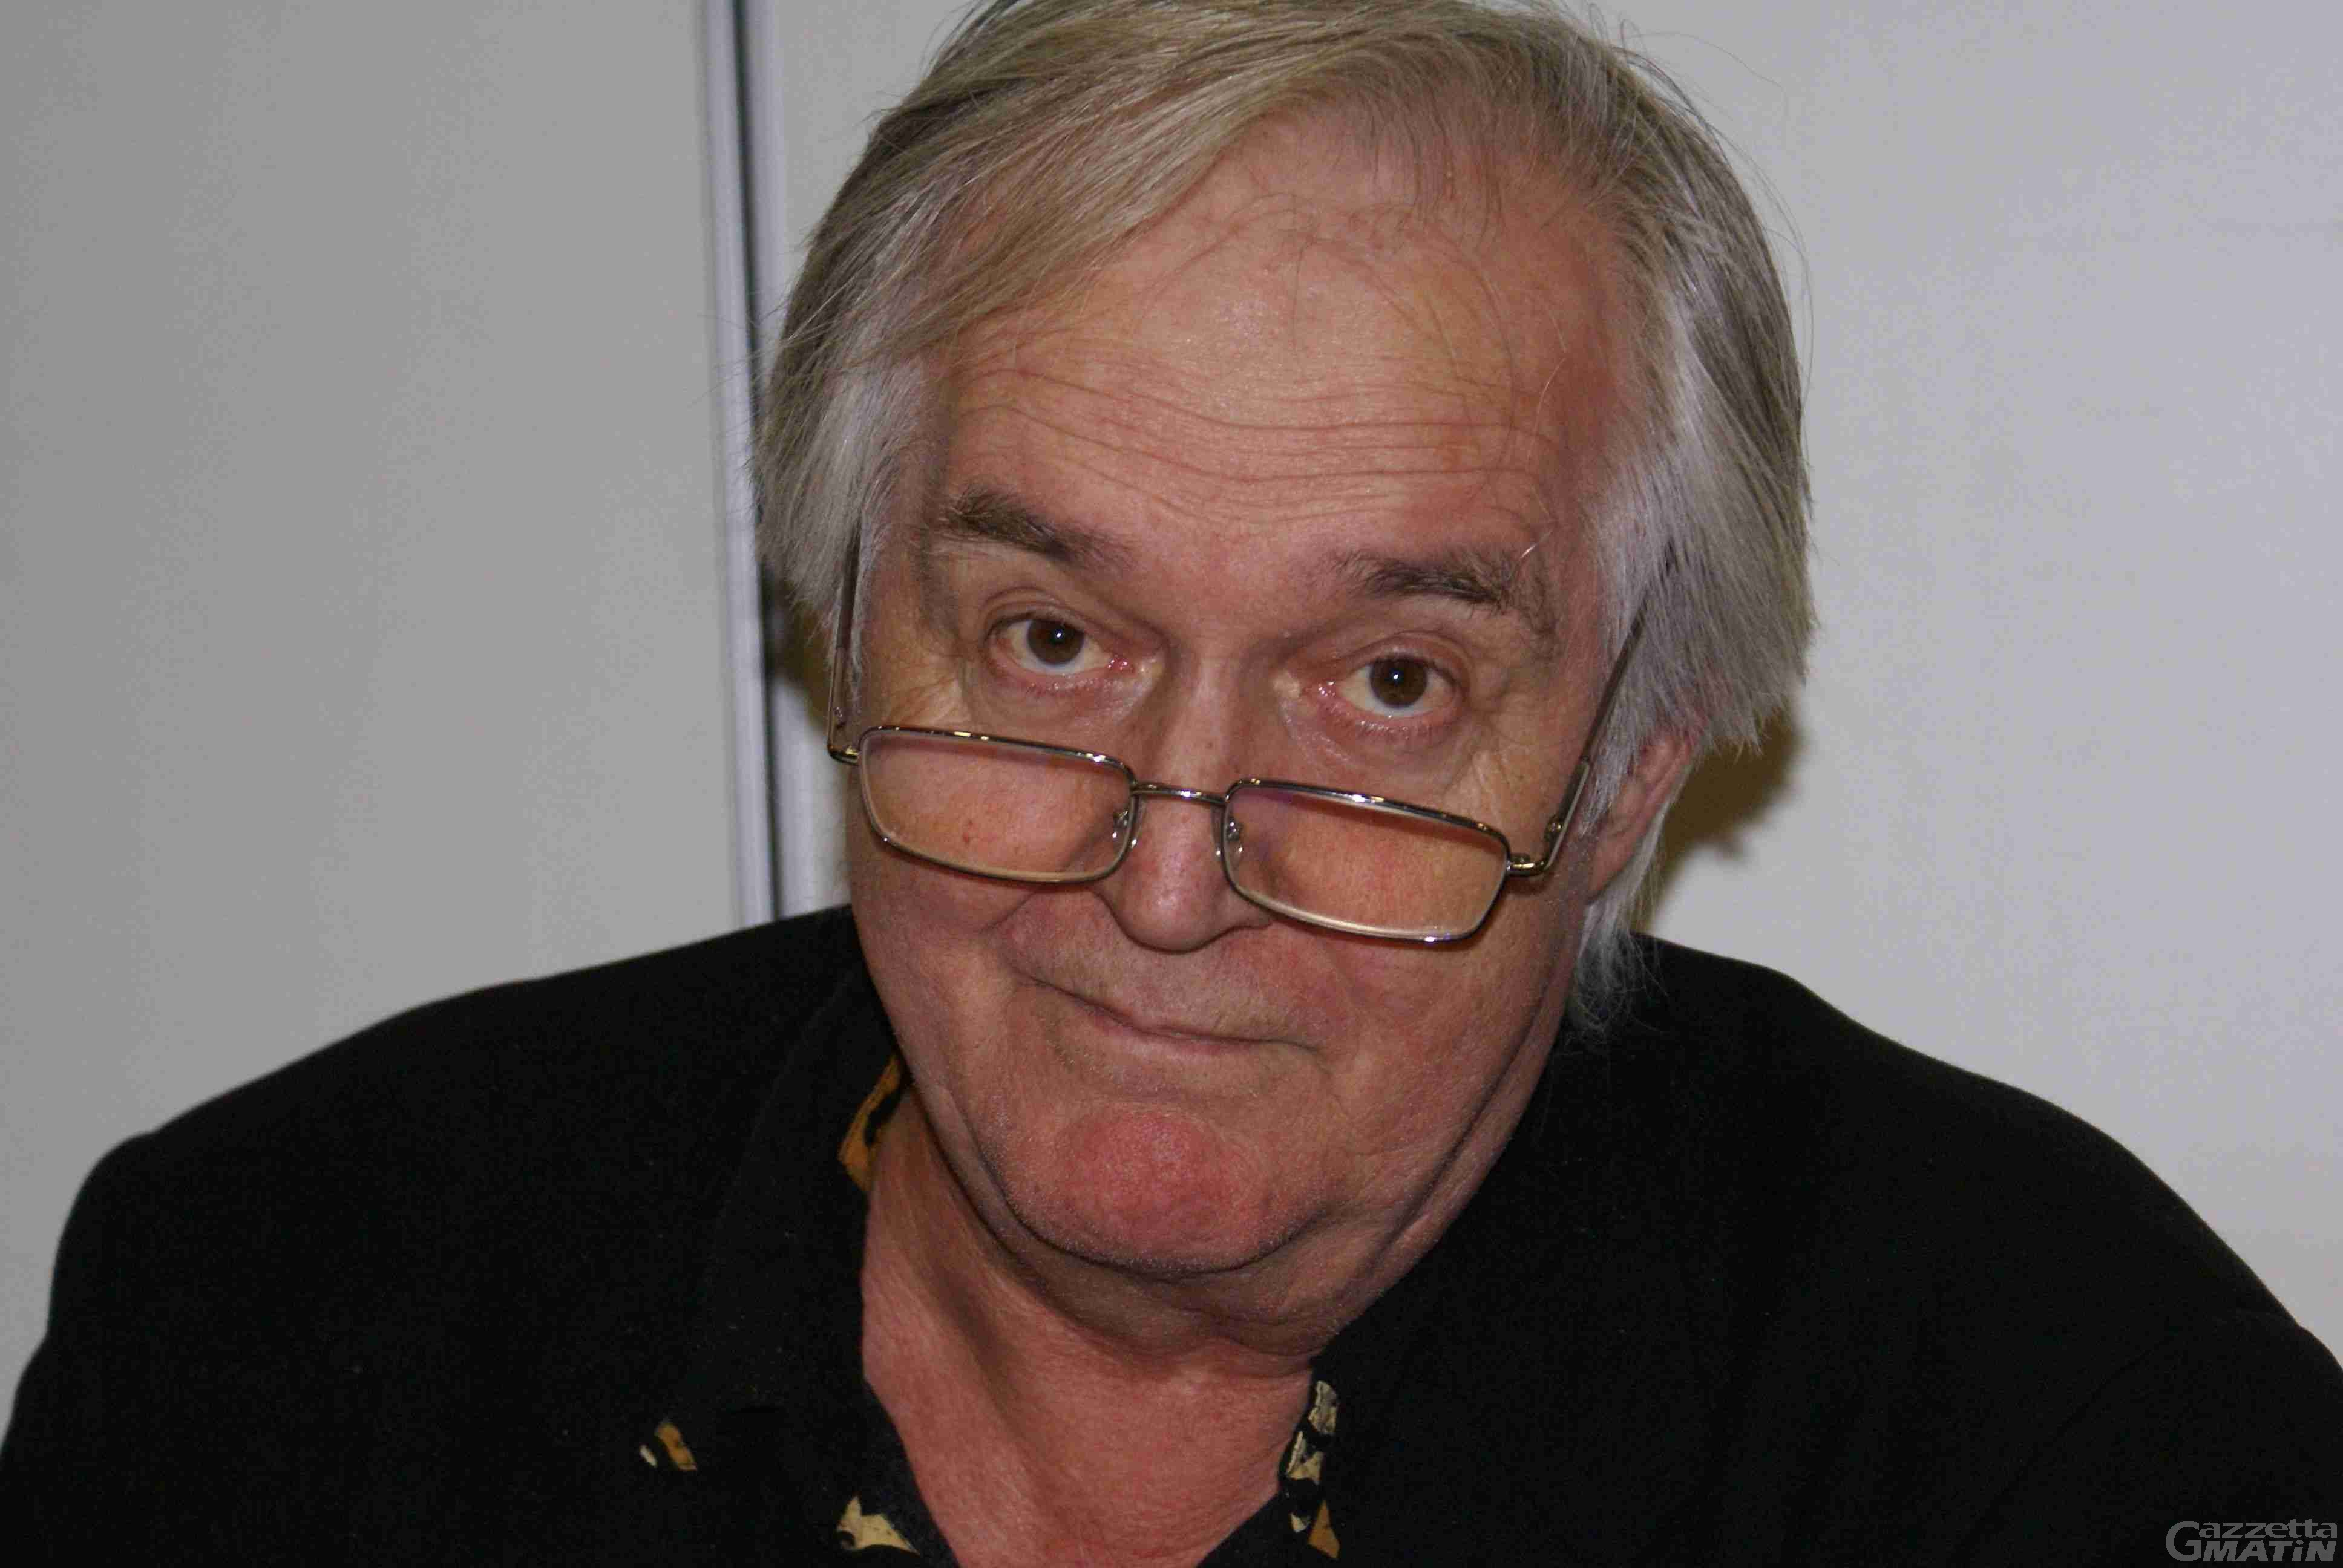 Letteratura: a Henning Mankell il Chandler 2013